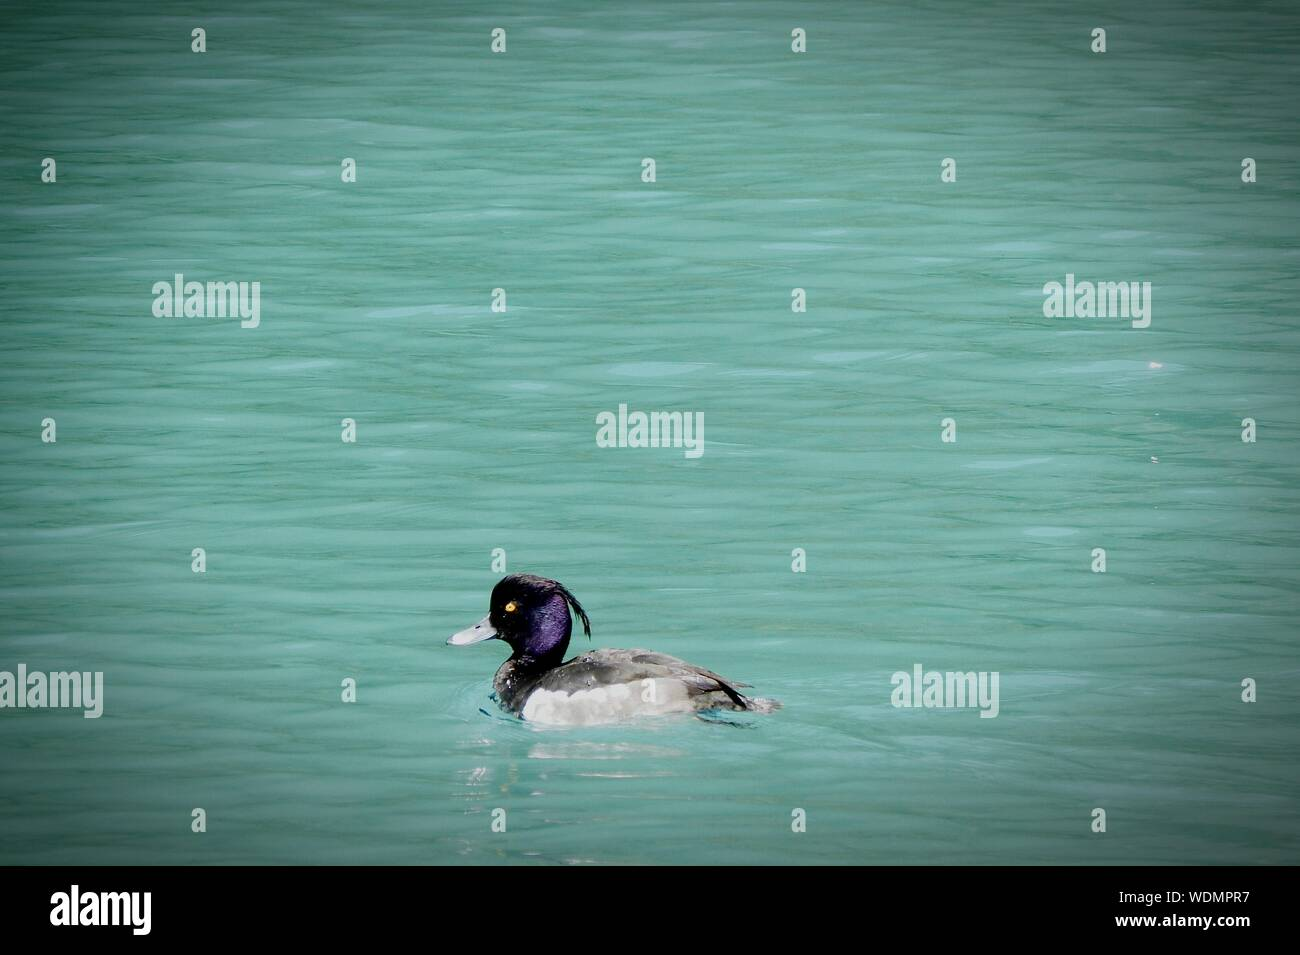 Tufted Duck Swimming In Lake Stock Photo